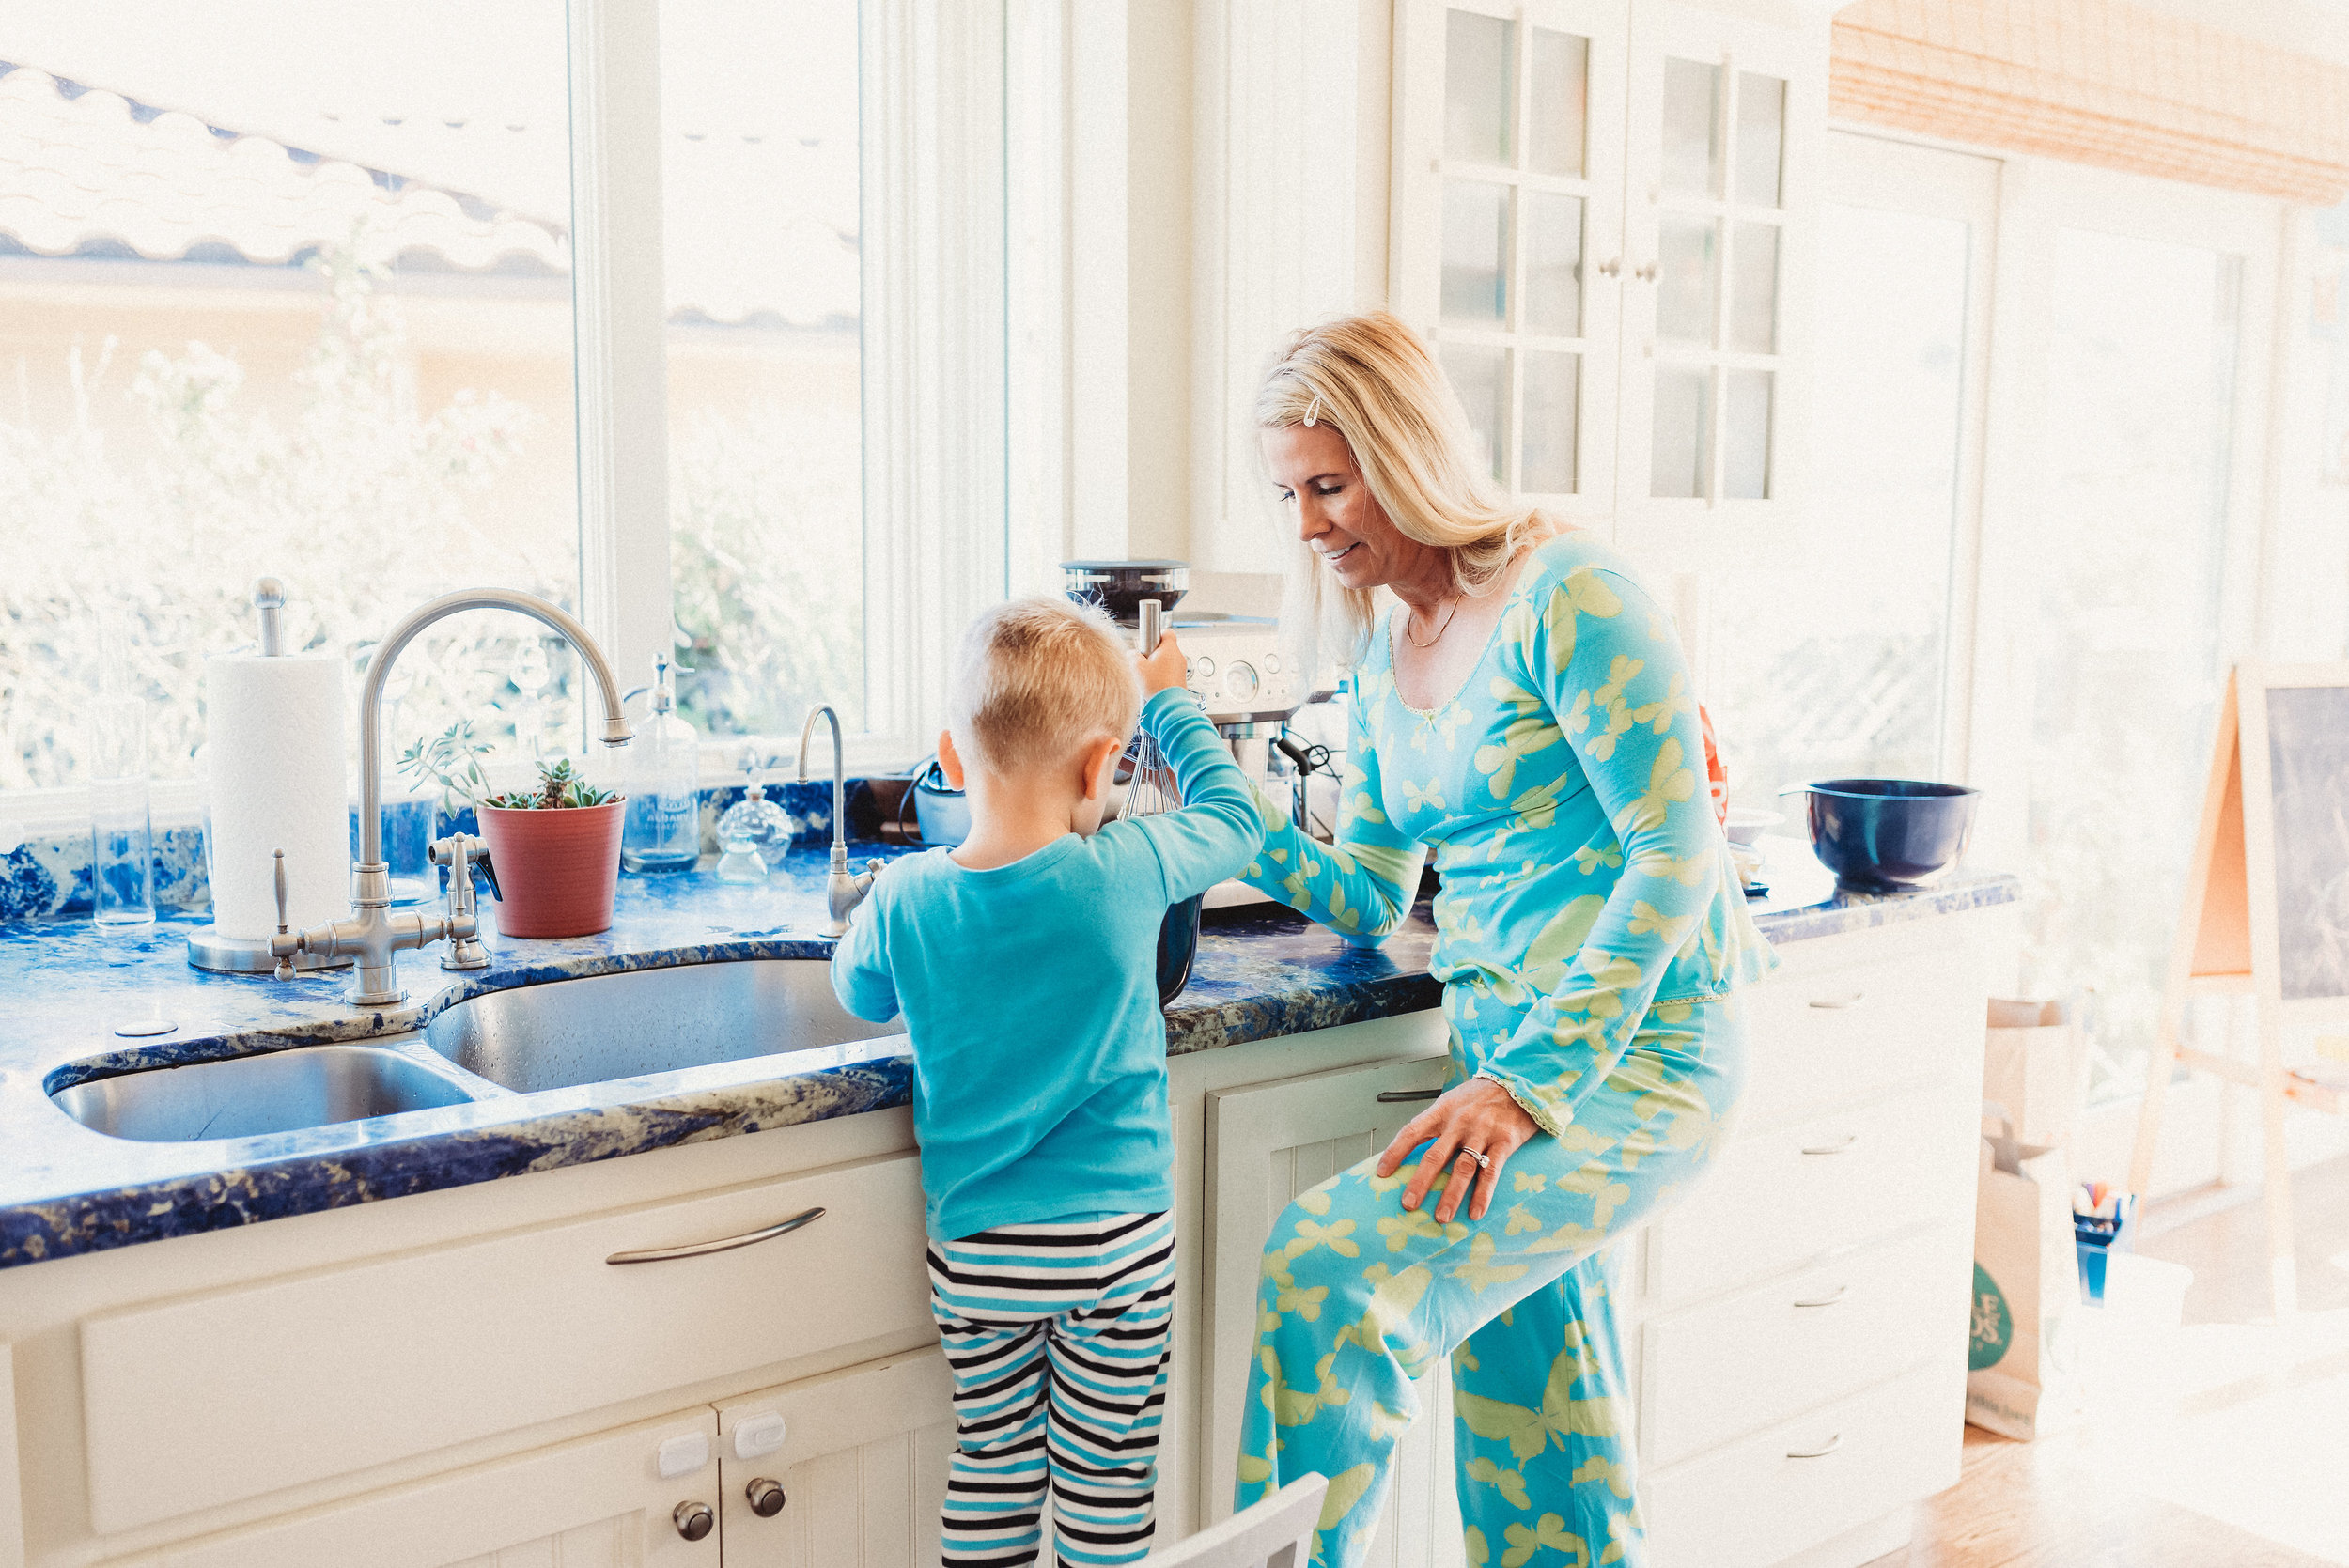 family pancakes morning routine mom of two toddlers pj mornings family time quality time16.jpg